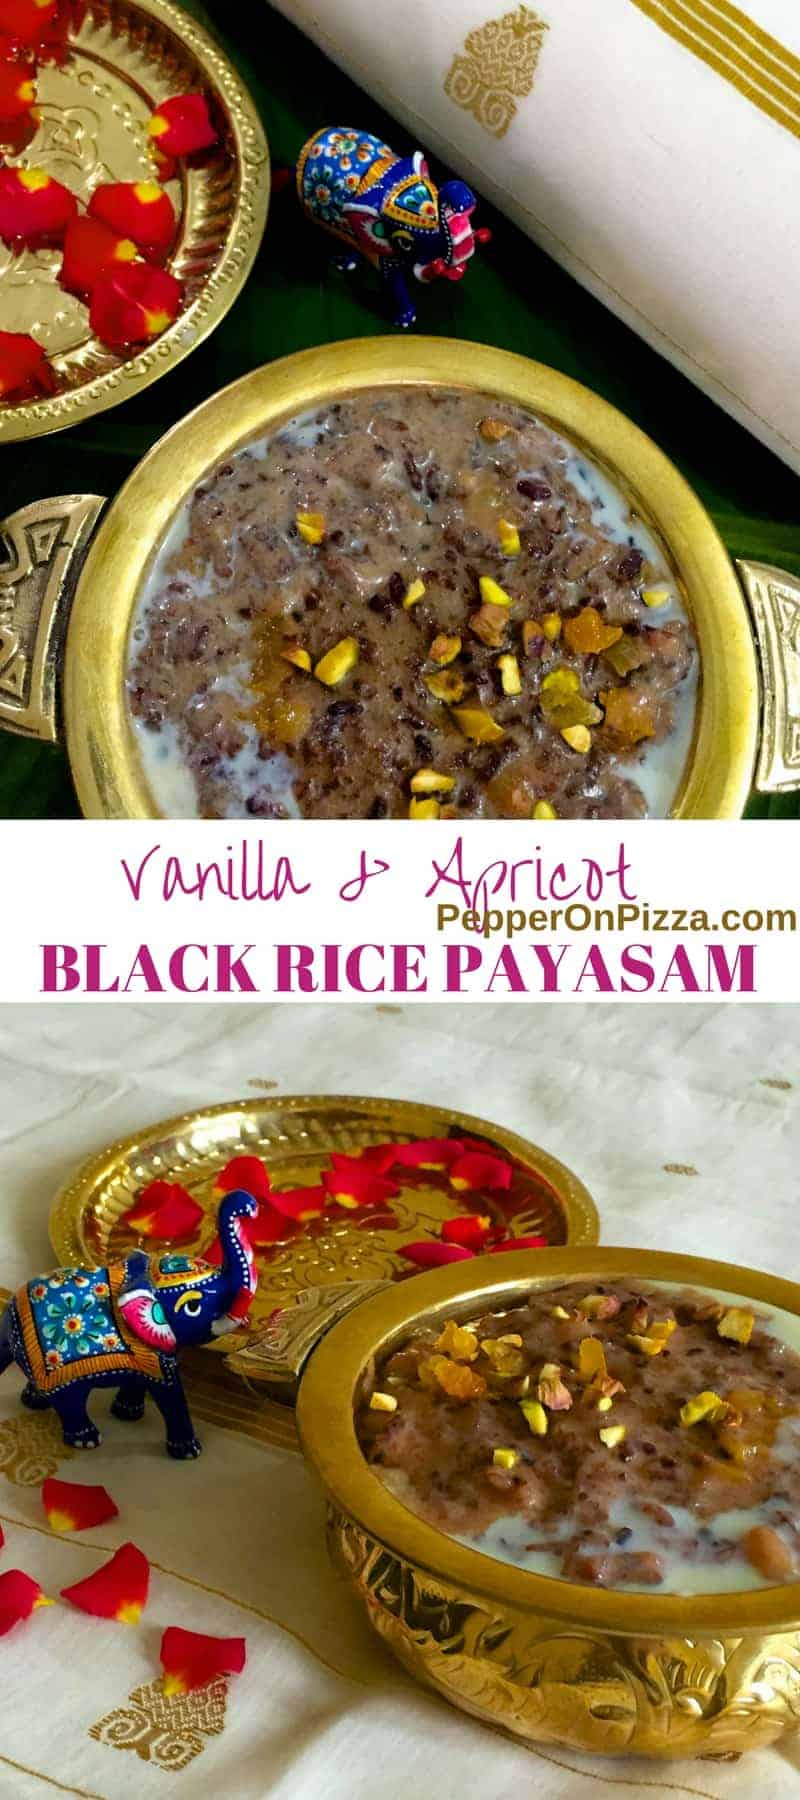 Exotic Black Rice Kheer Payasam with Vanilla, Apricot and Pistachio without ghee. The Black 'Forbidden Rice' is nutritious and fragrant with a nutty taste.